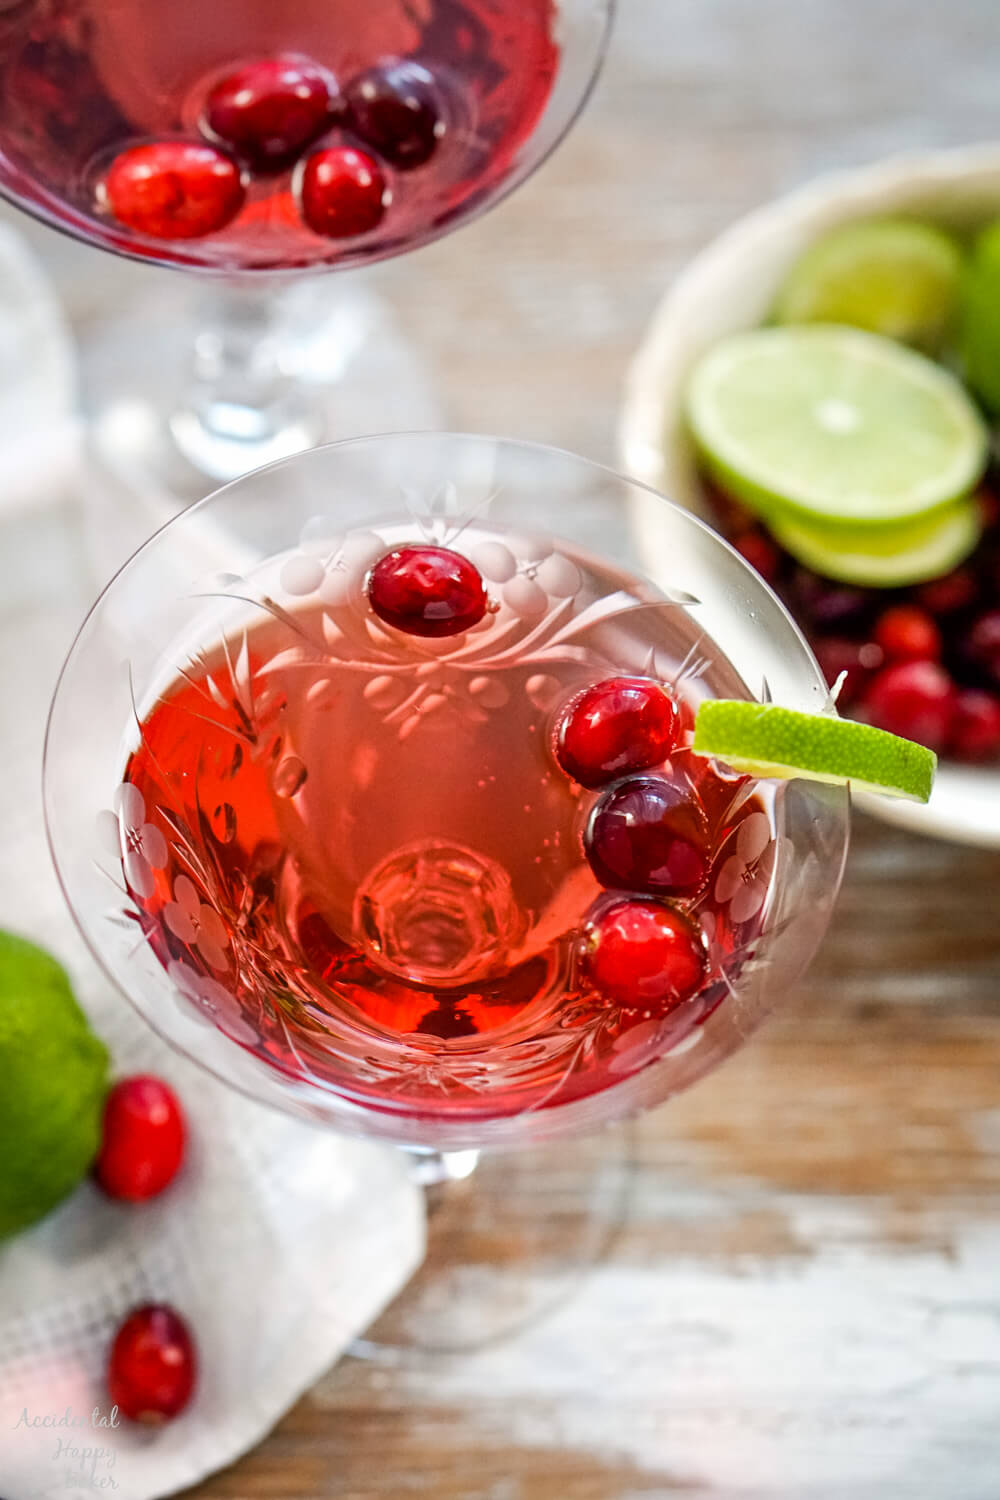 A close up image that shows the glass of punch.